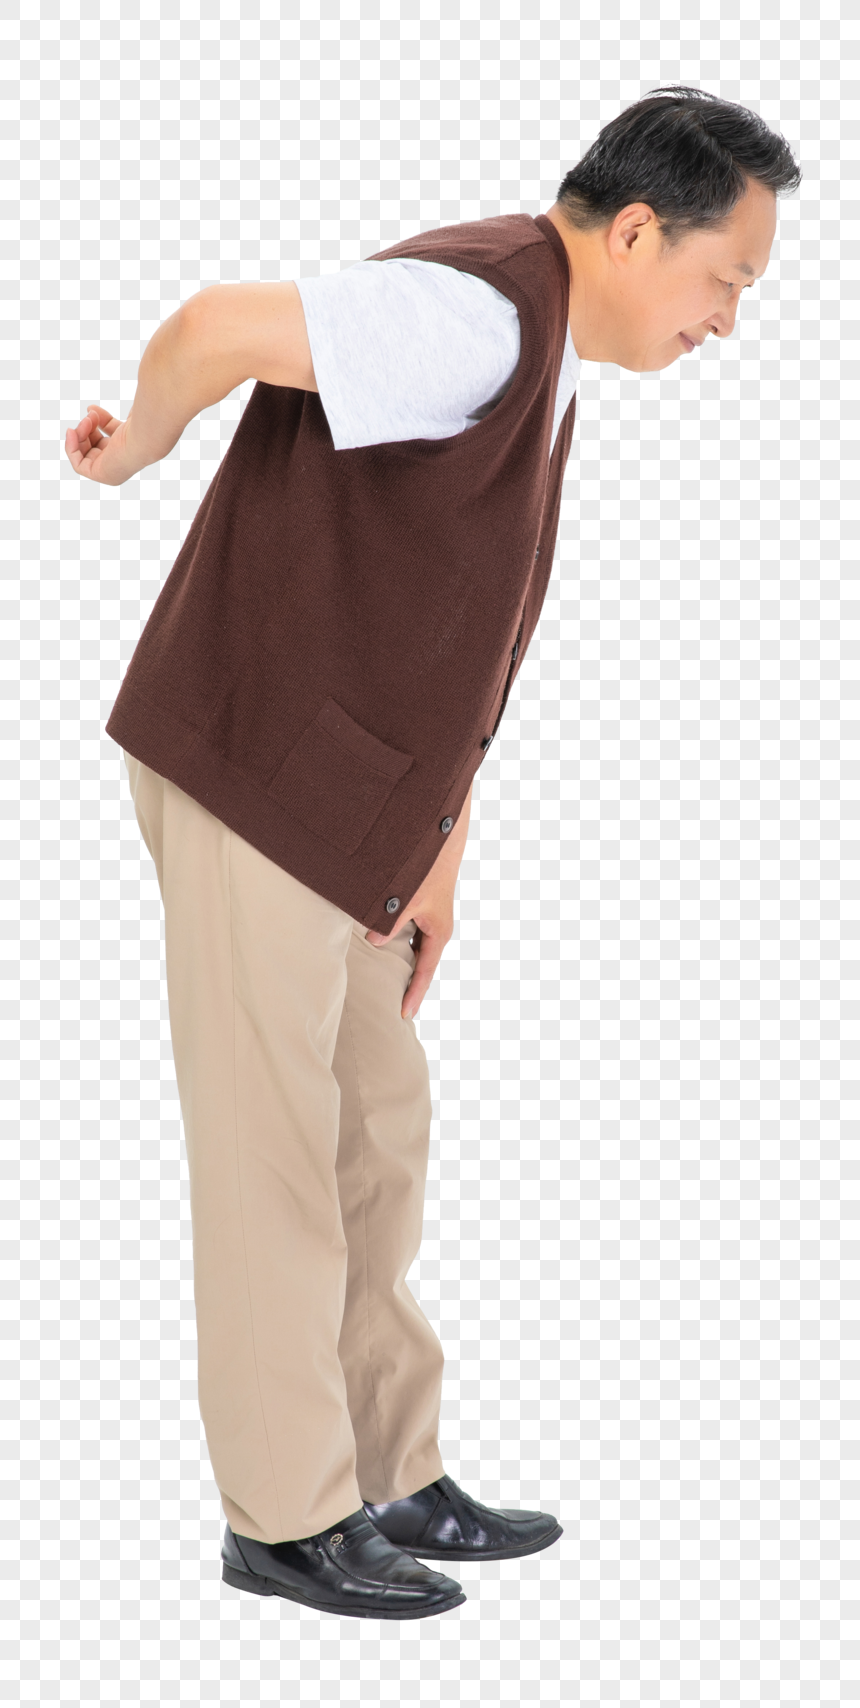 Old People With Back Pain Png Image Picture Free Download 400217192 Lovepik Com